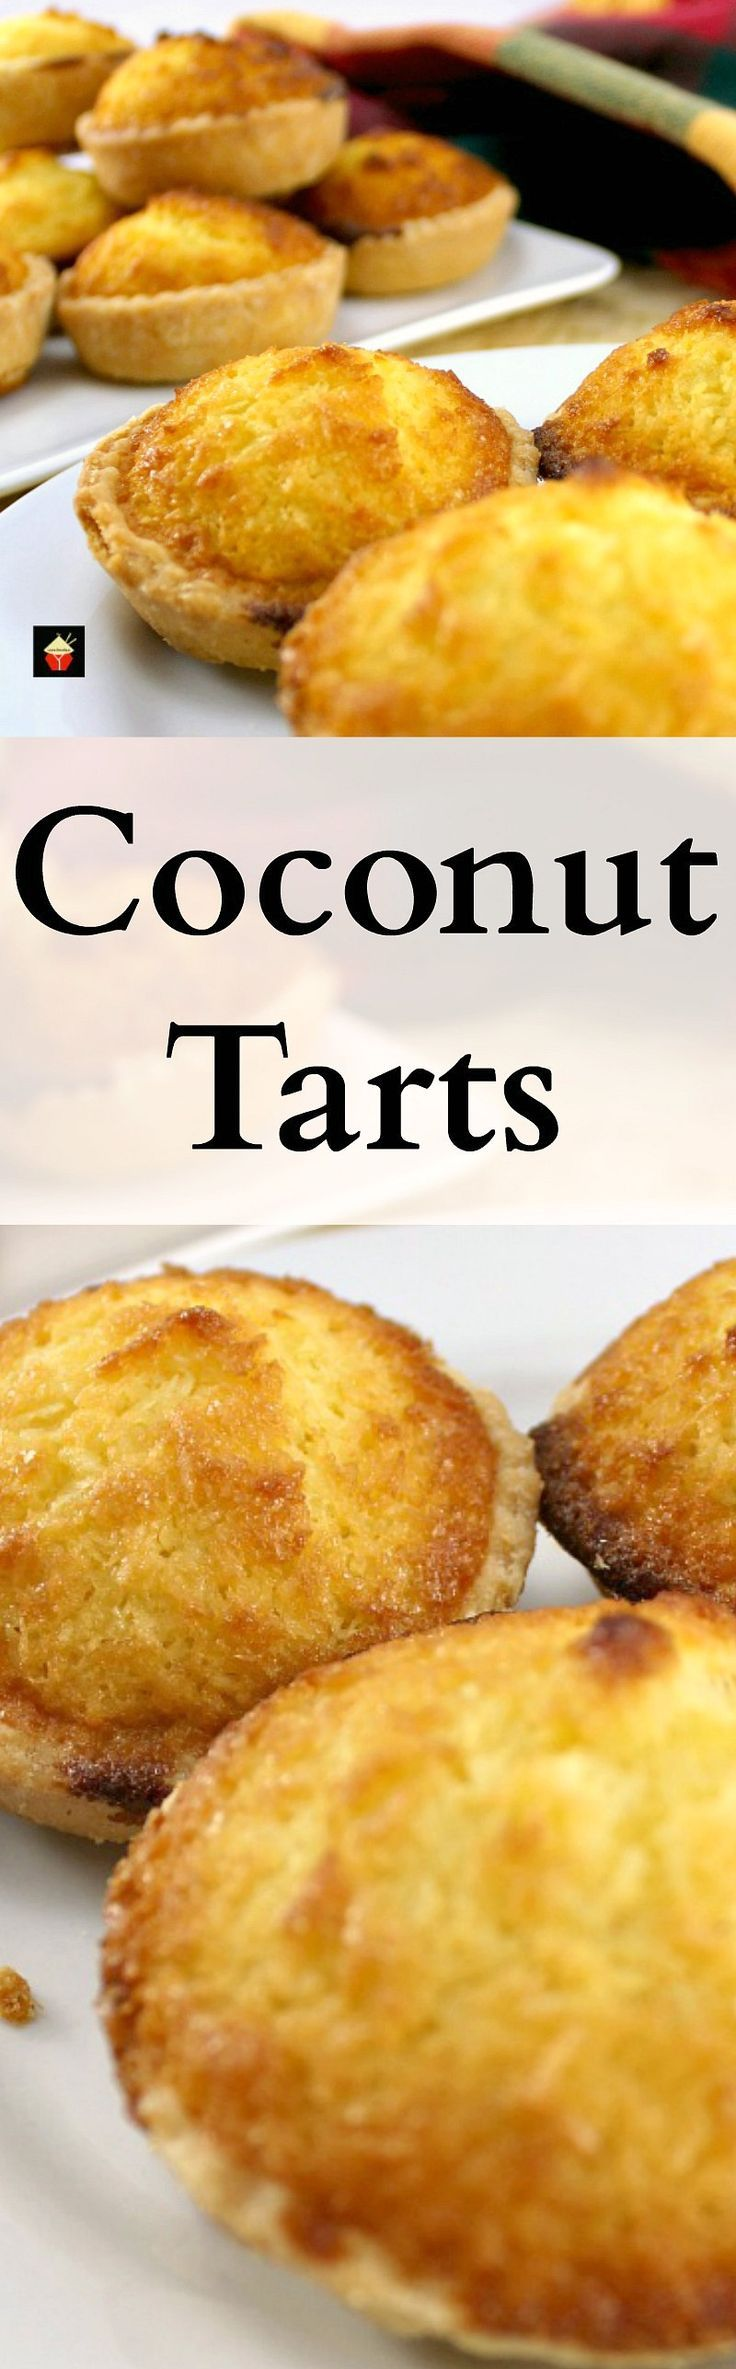 Coconut Tarts! These are a wonderful little tart, filled with a moist coconut egg custard filling. Great for the family and if you're making these for a party, be sure to make plenty! Freezer friendly too! | http://Lovefoodies.com